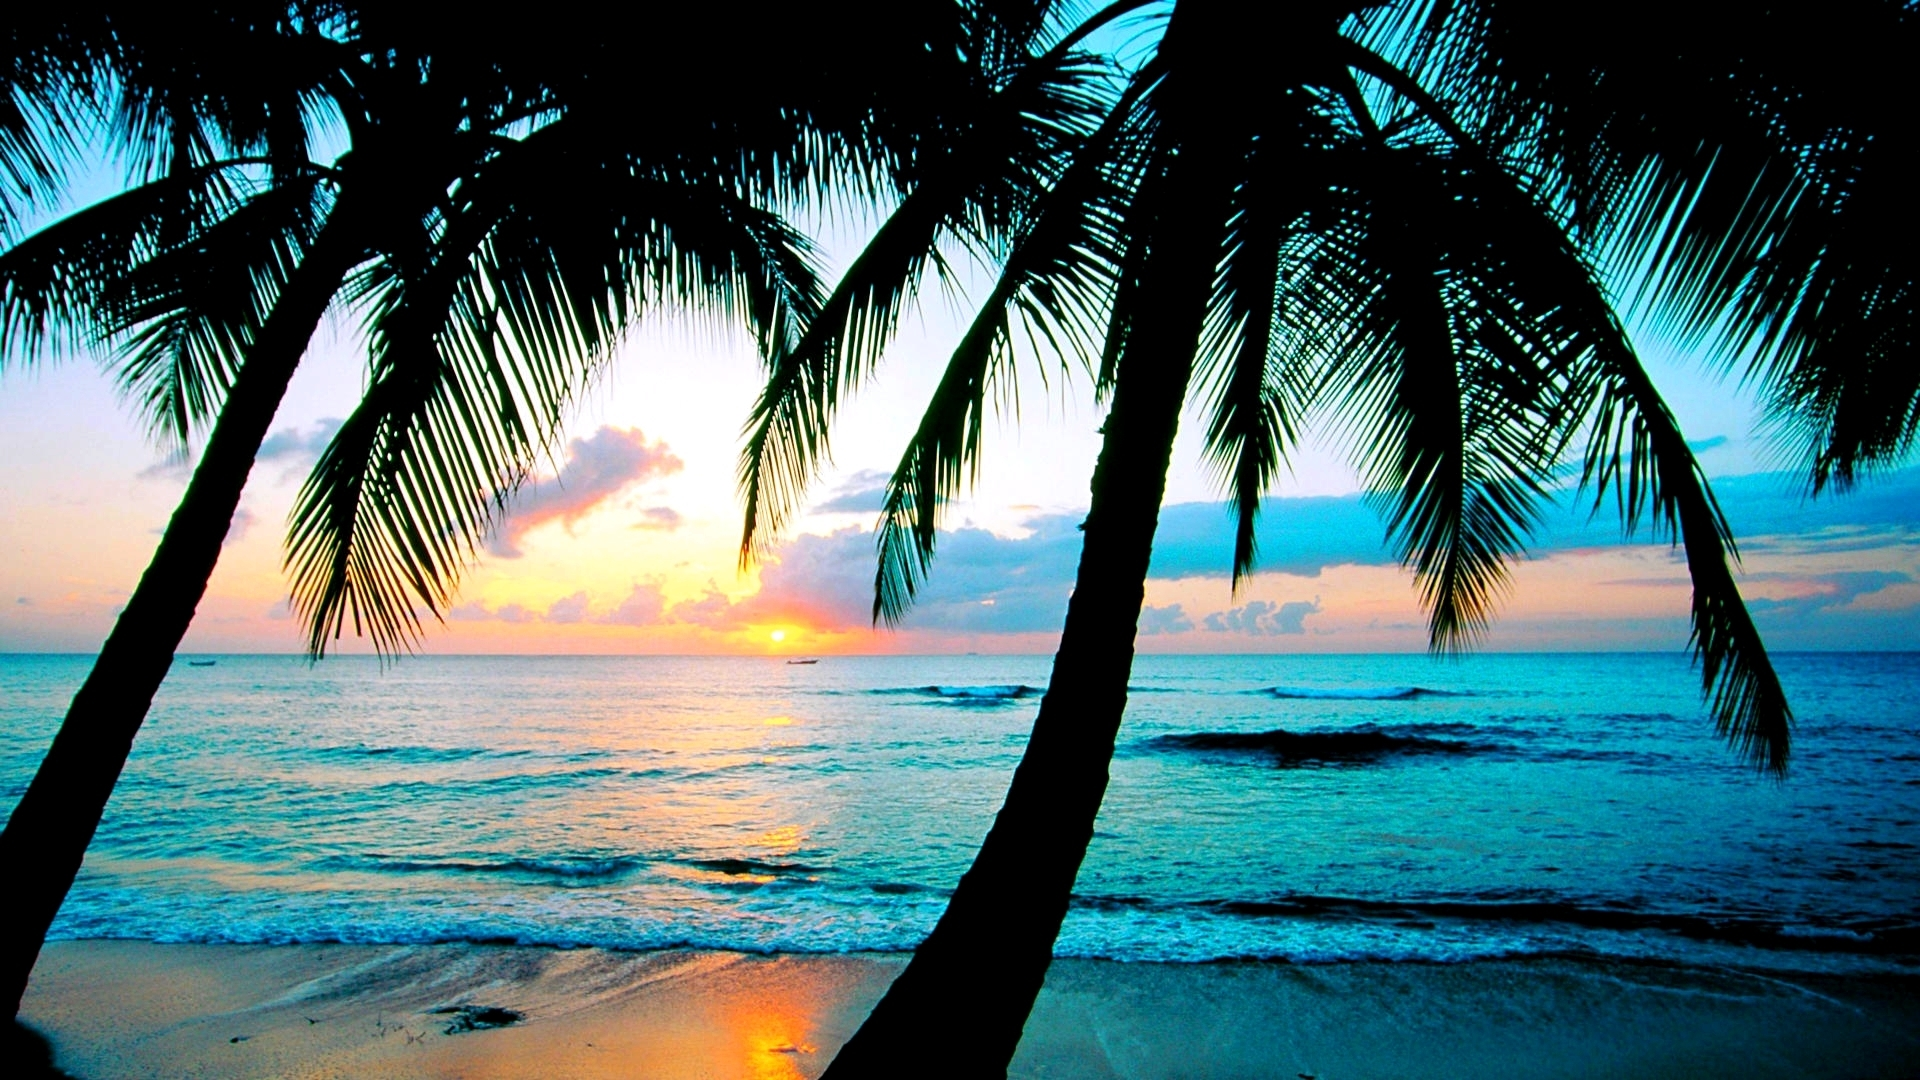 beach wallpapers, gallery of 48 beach backgrounds, wallpapers